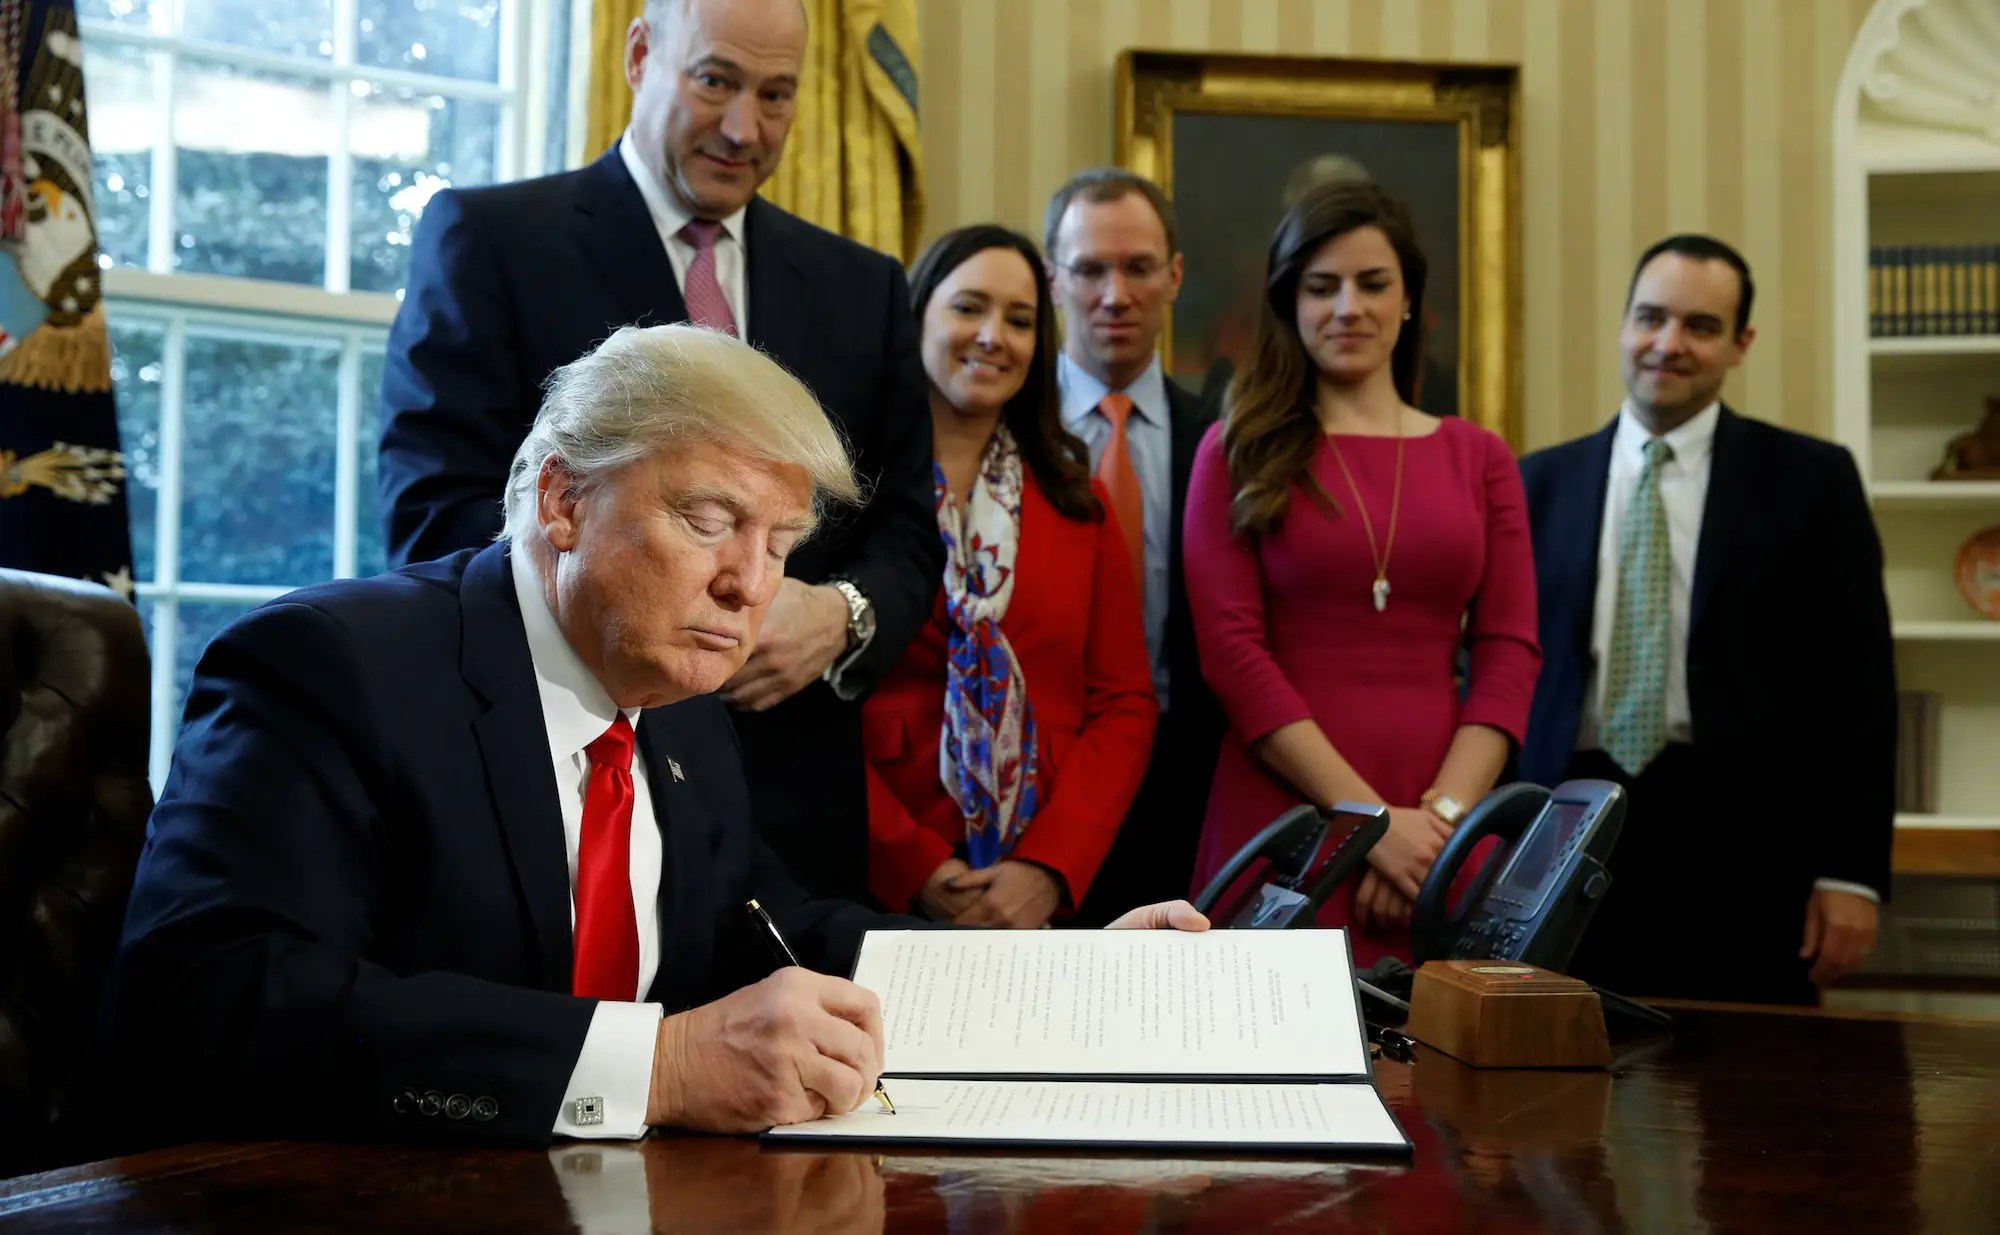 Executive Order, February 3: Reviewing Wall Street regulations